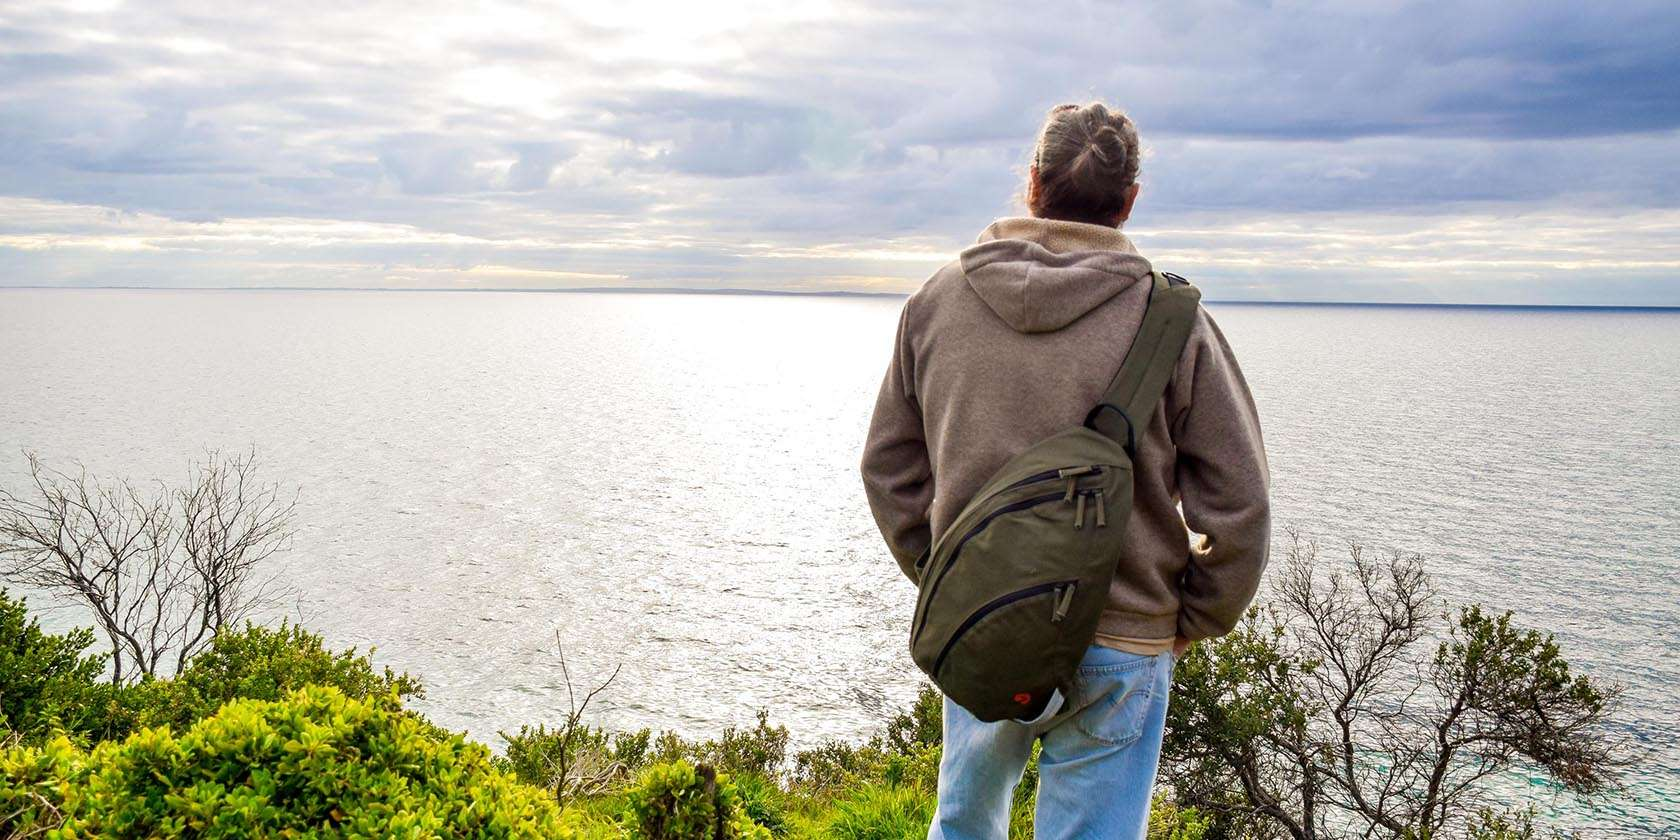 Male Model wearing olive green sling backpack at the beach